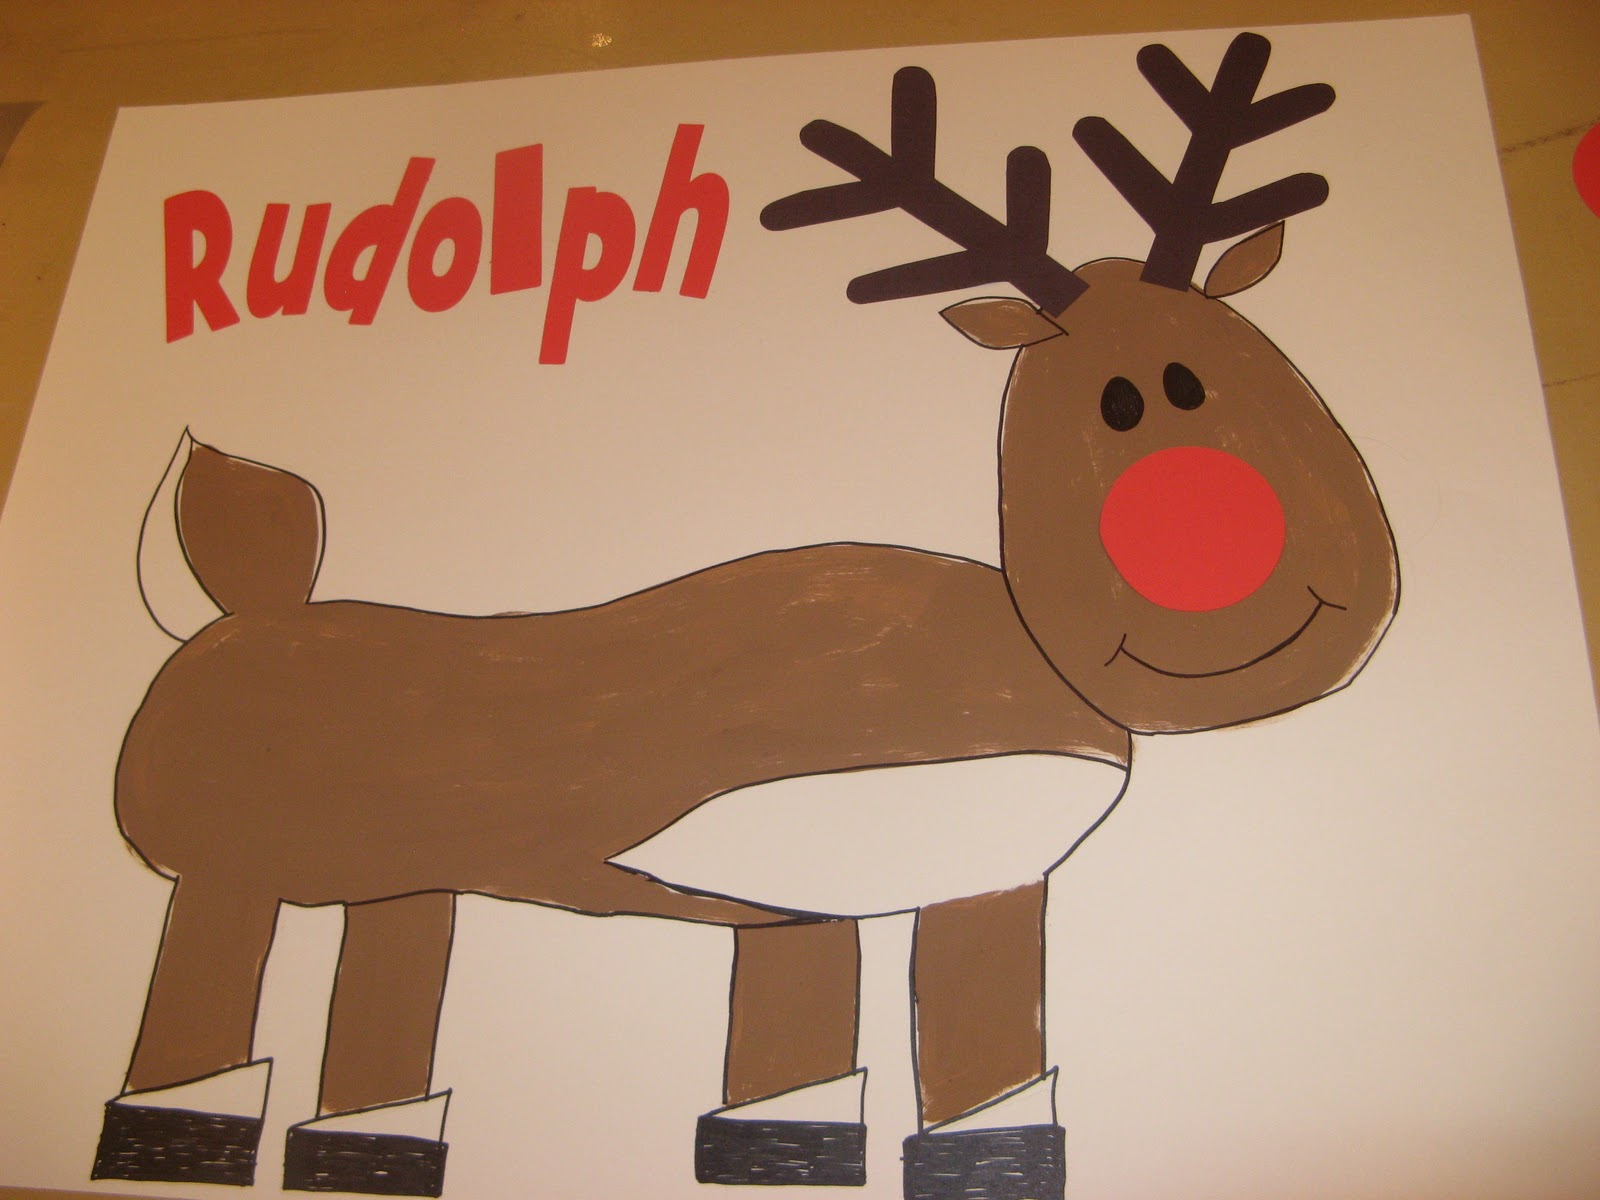 Pin The Nose On Rudolph To put on a blind-fold.